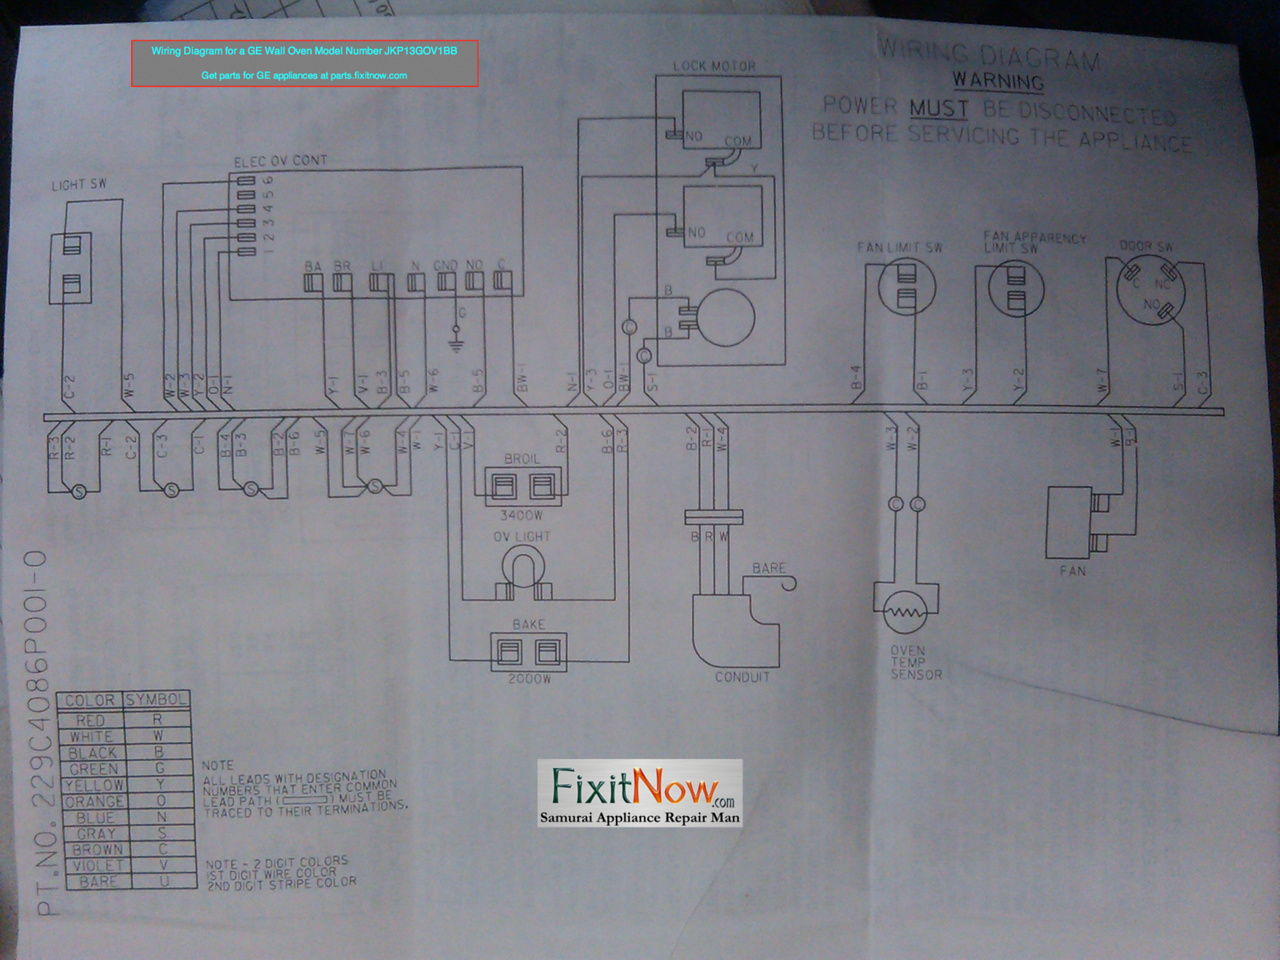 Wiring Diagrams And Schematics Appliantology Ge Electric Clothes Dryer Diagram For A Wall Oven Model Number Jkp13gov1bb